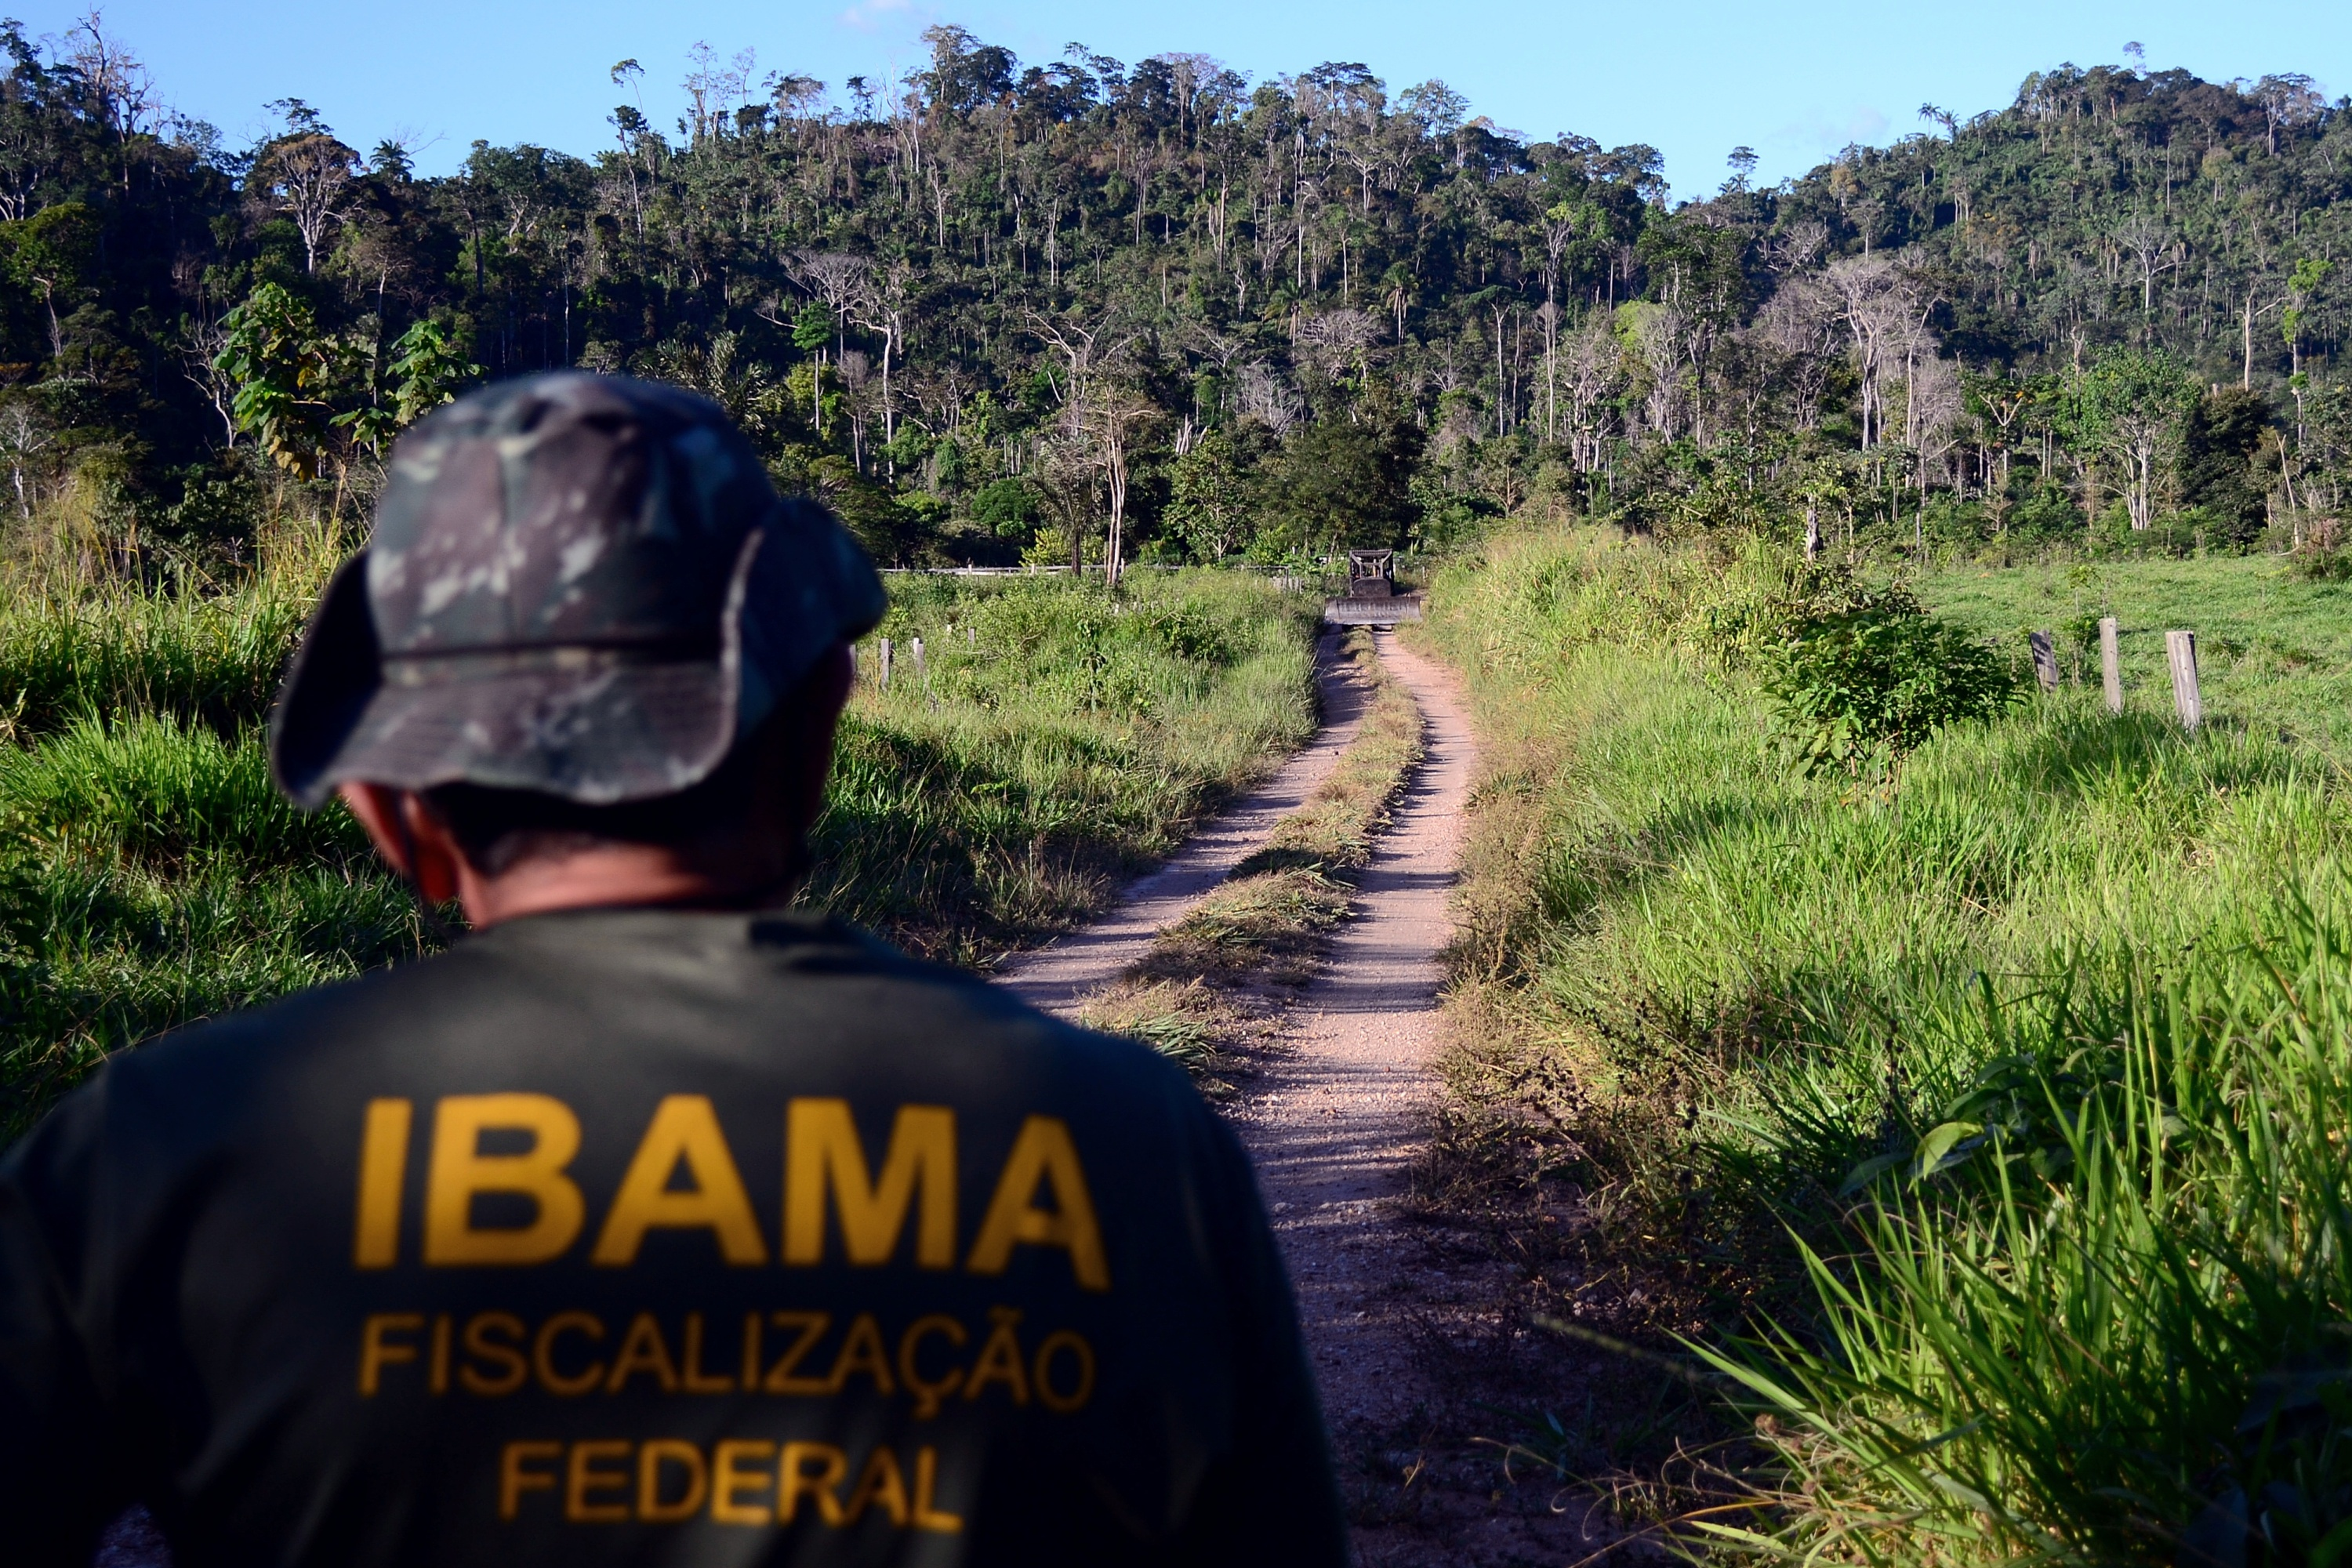 President Jair Bolsonaro has been criticized for dismantling IBAMA, Brazil's environment agency. In this photo IBAMA agents remove deforestation machinery from the forest. Image by Vinícius Mendonça/Ibama [CC BY 2.0.]